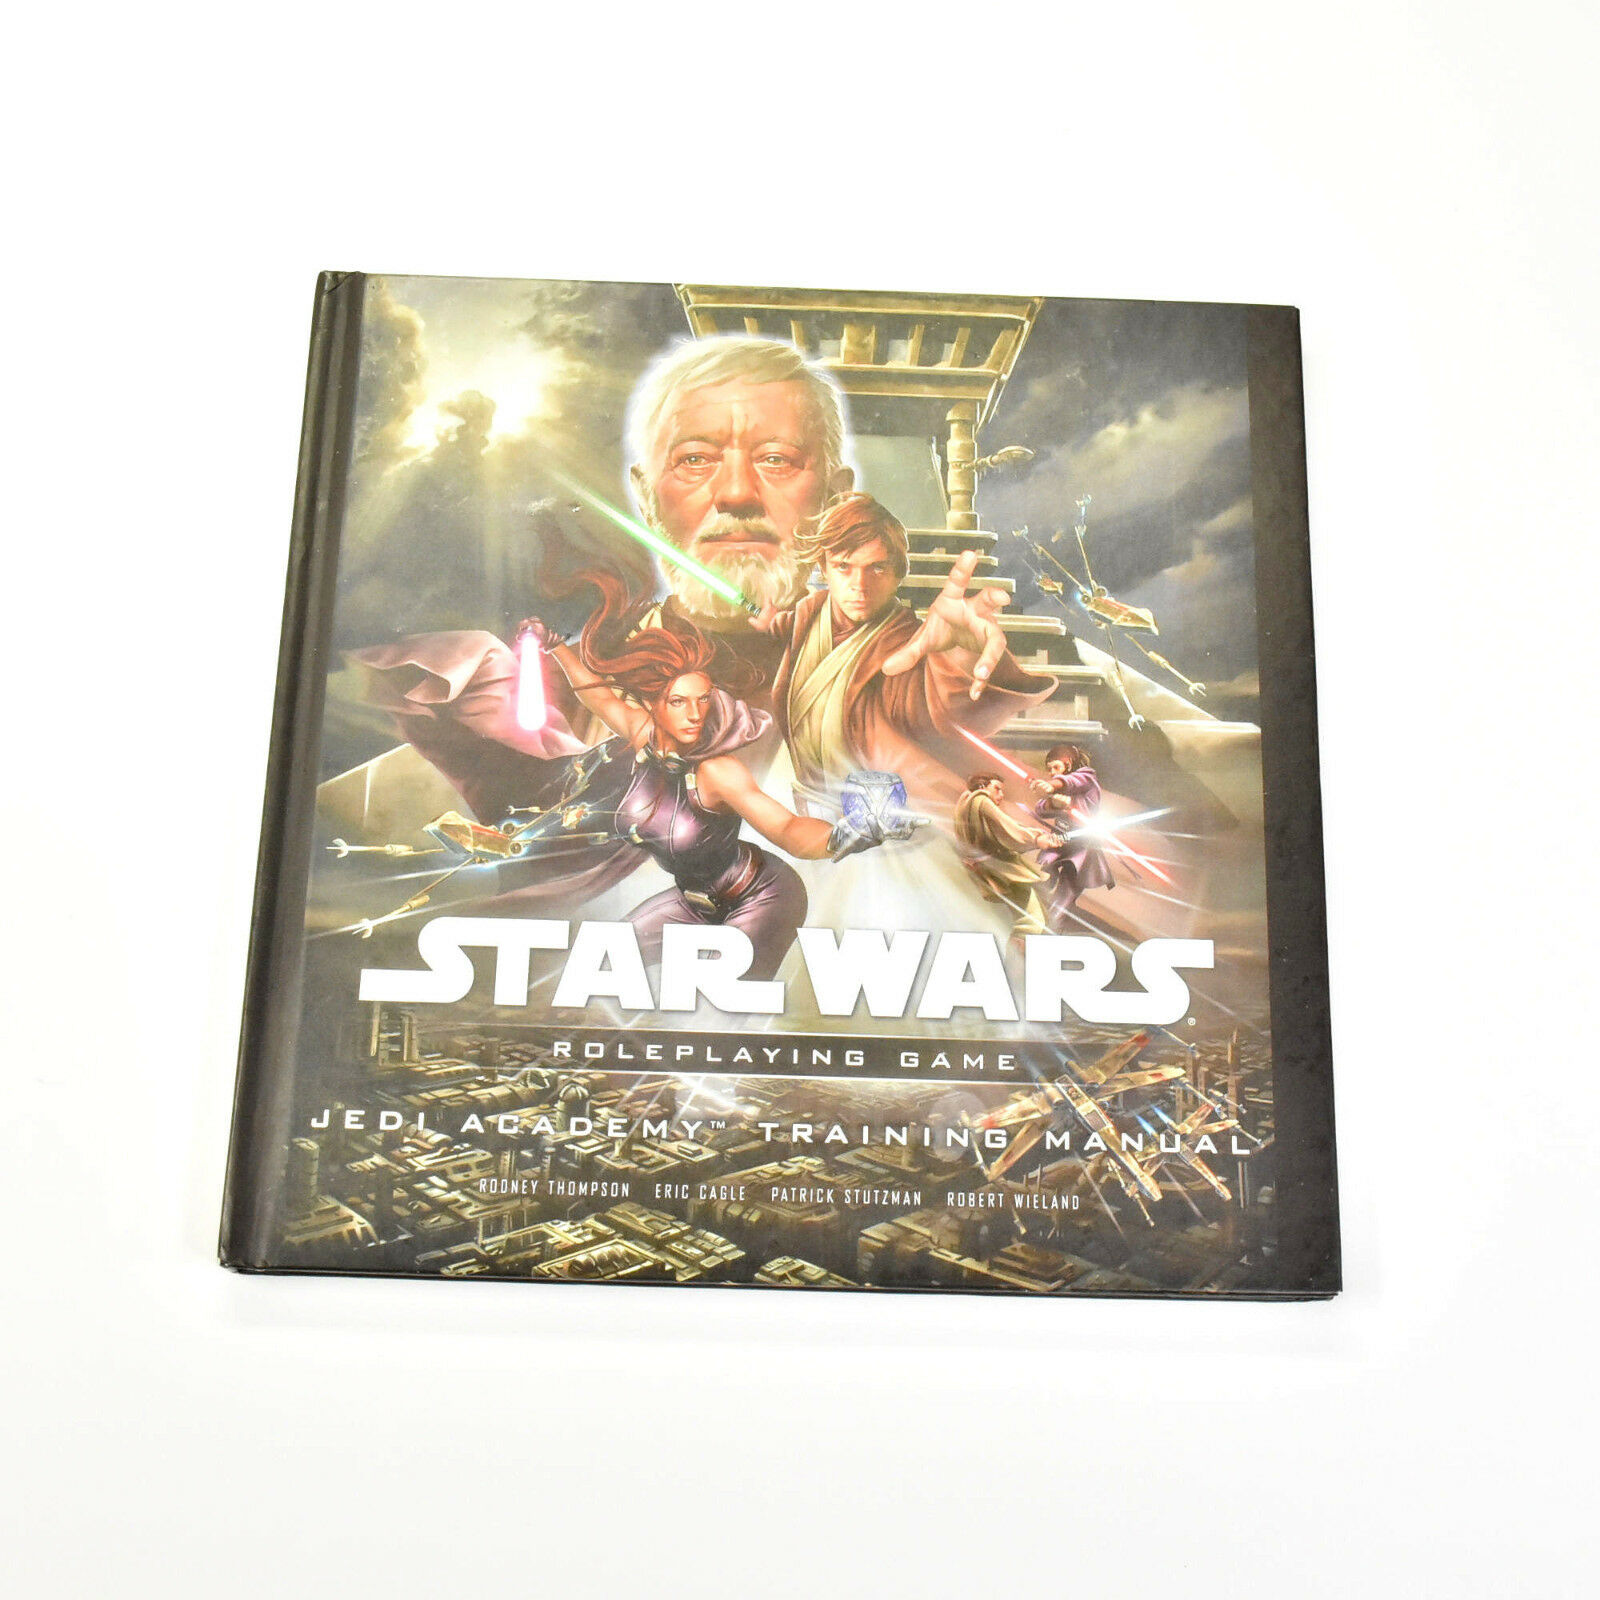 STAR WARS RPG Roleplaying game Jedi academy training manual manual manual guide Book Saga d5f3f9